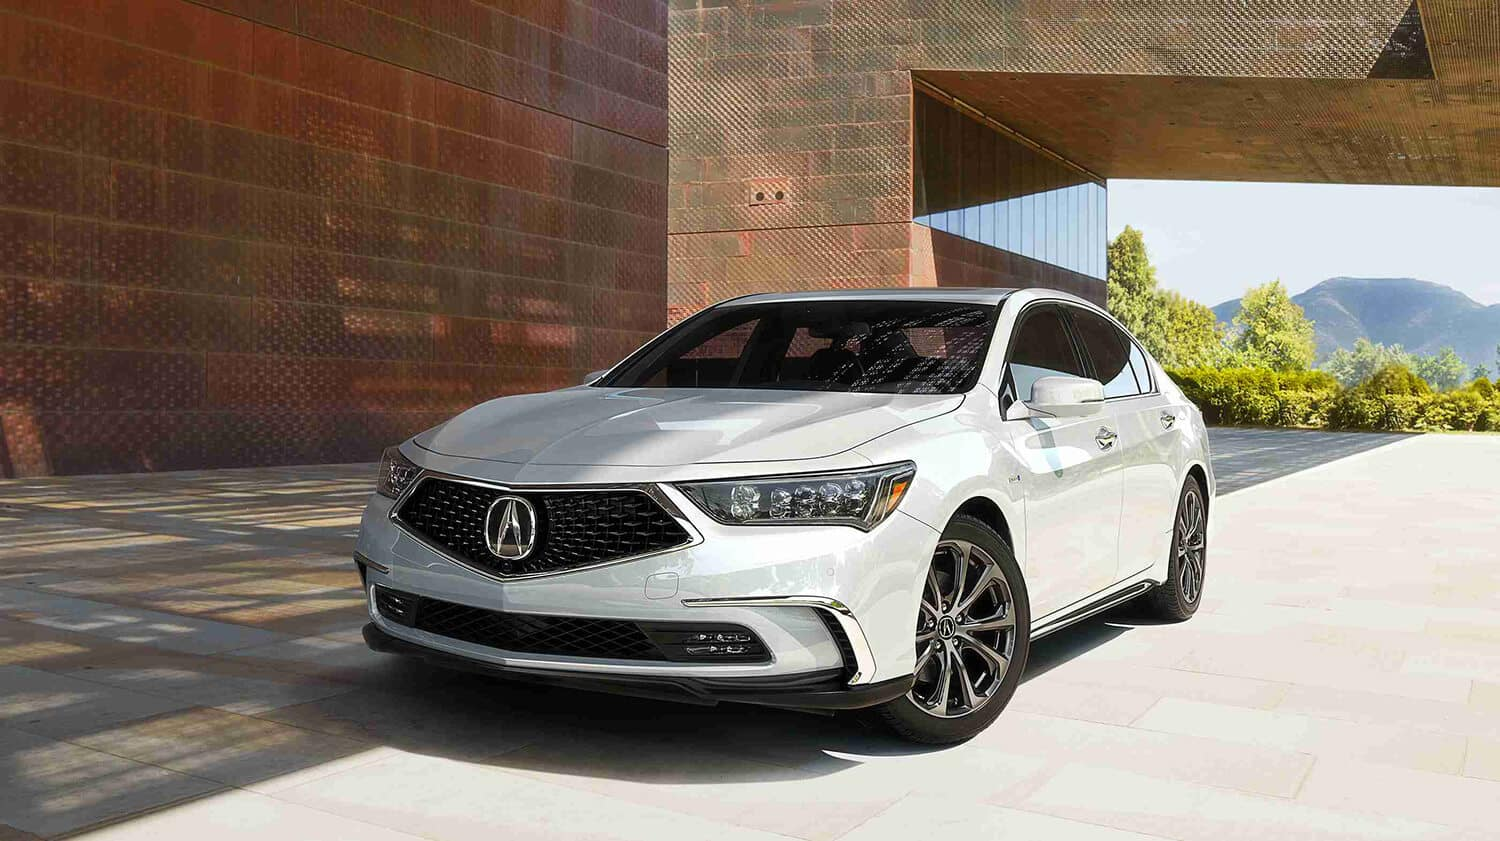 2018 Acura RLX Exterior Front Angle Driver Side White